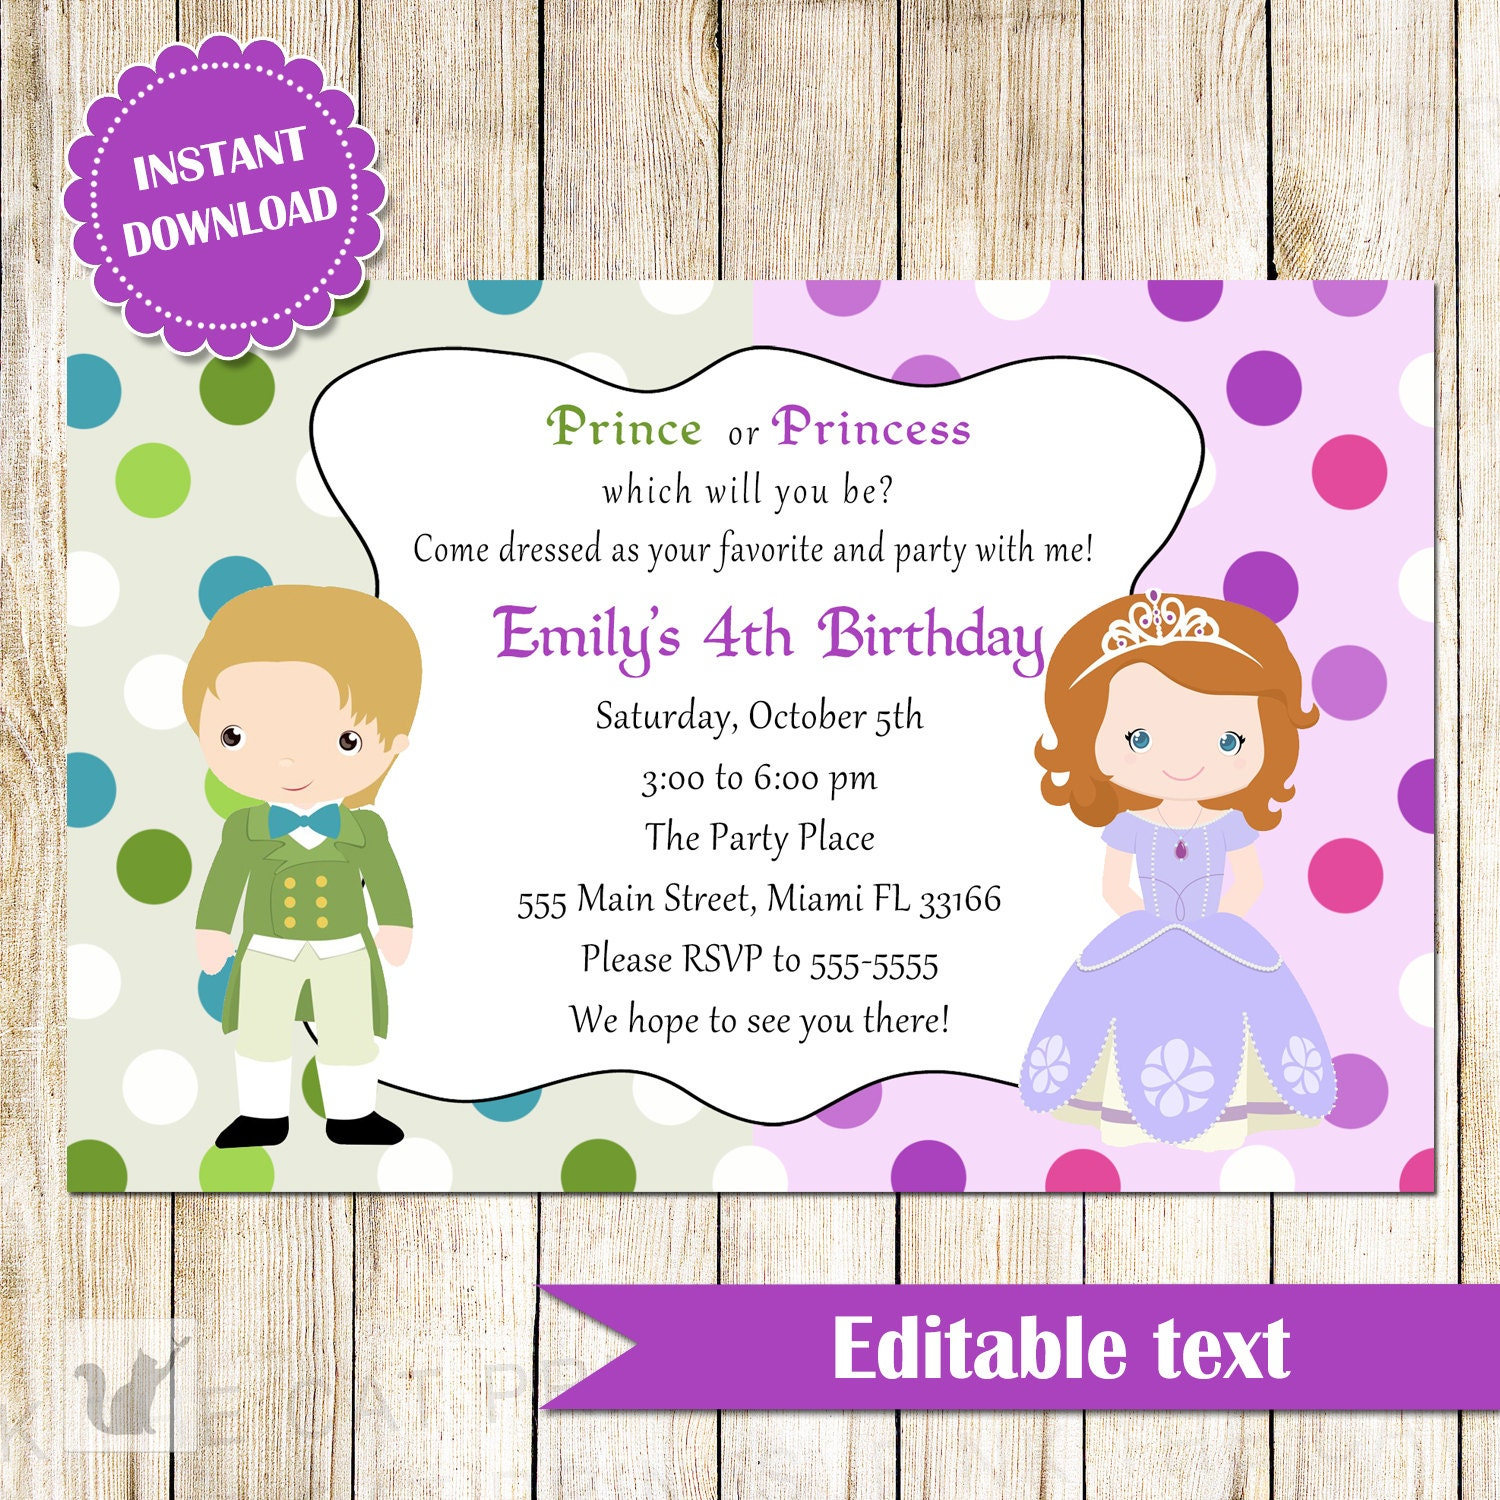 Prince and Princess Invitation Green Purple Printable Kids – Invite a Princess to Your Party